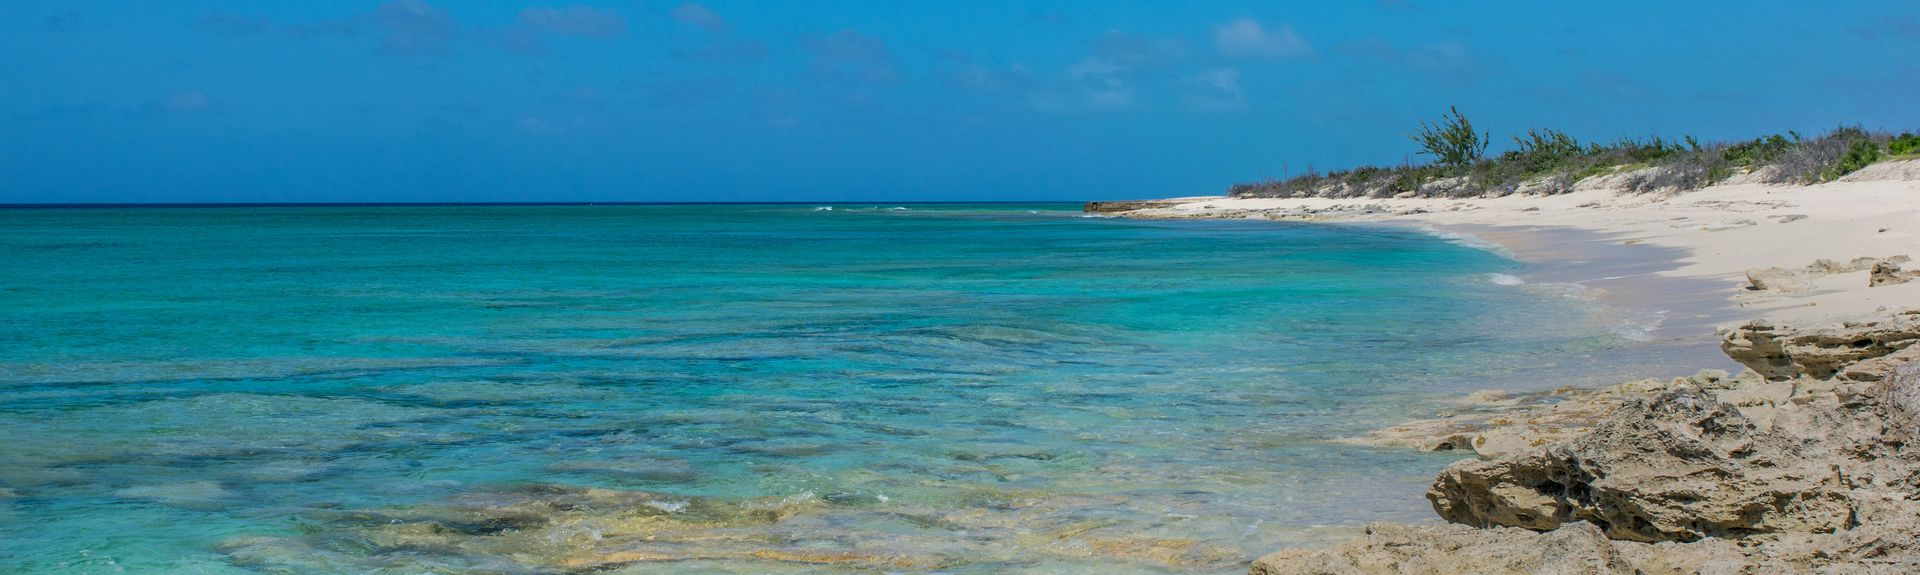 Grand Turk Beach, Grand Turk, Turks and Caicos